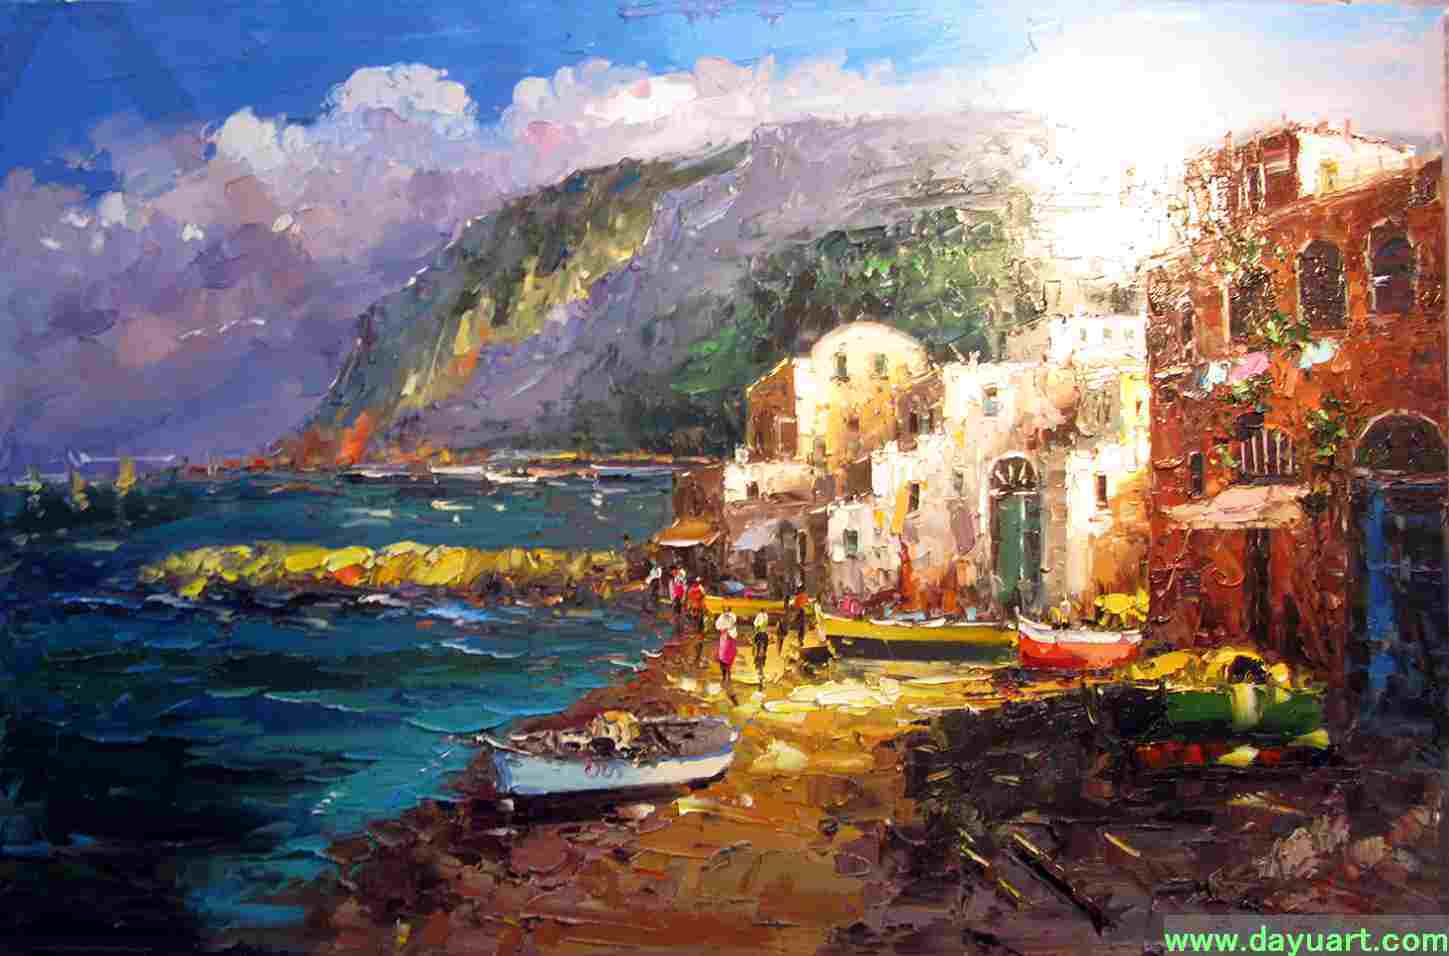 oil paintings Oil painting is the most natural and enduring of all painting media, with that said,  it's worth taking proper care of paintings too the first side bar has links from the.